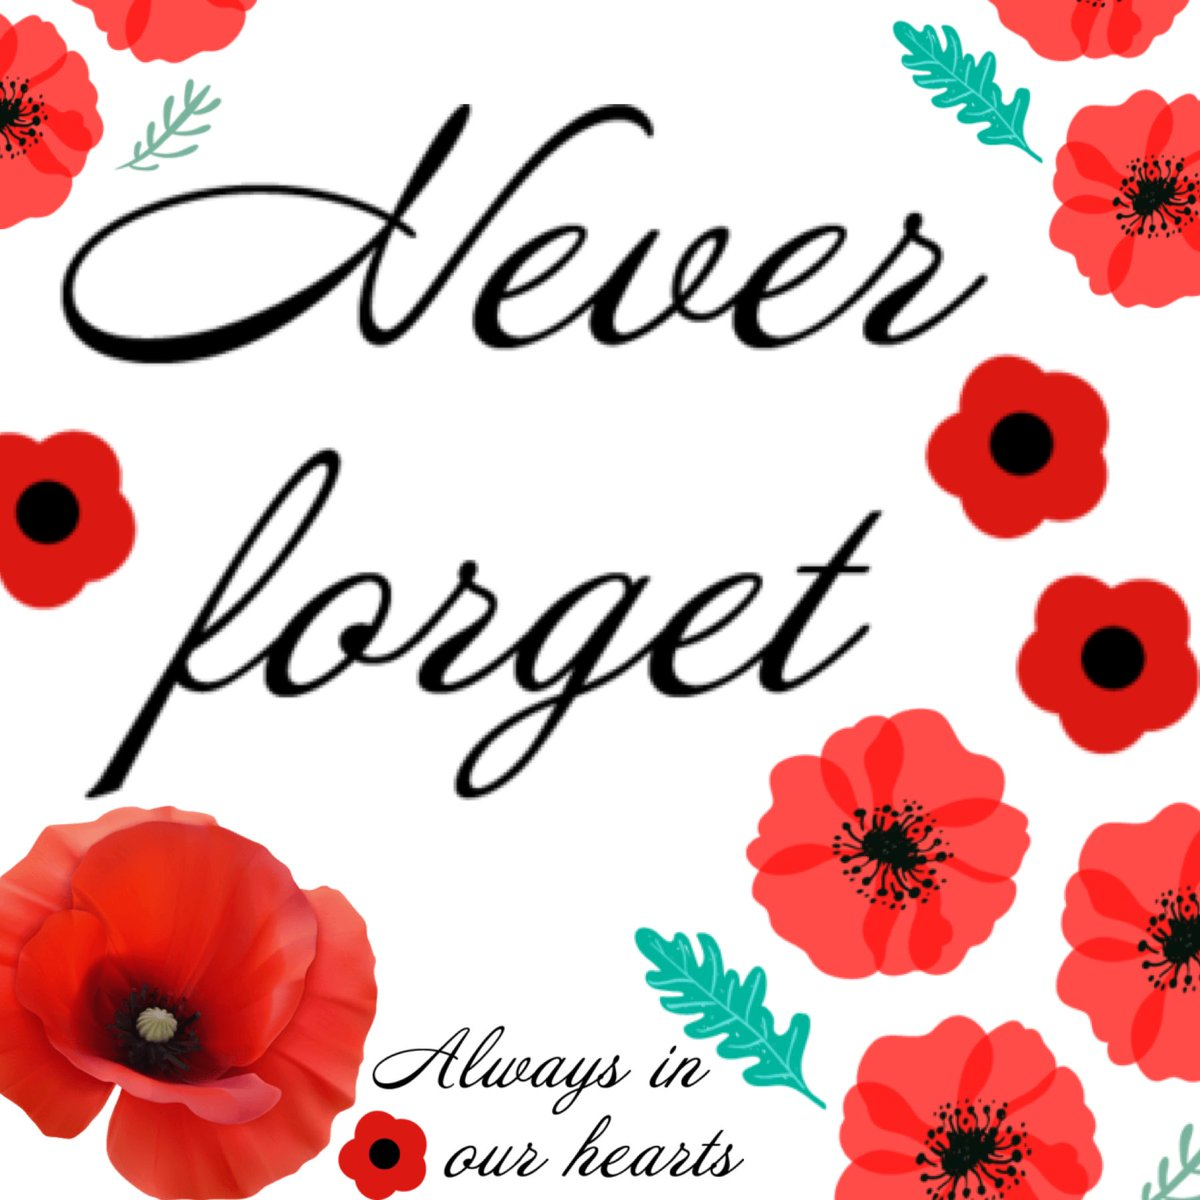 We will remember ❤️ #LestWeForget #RemembranceSunday